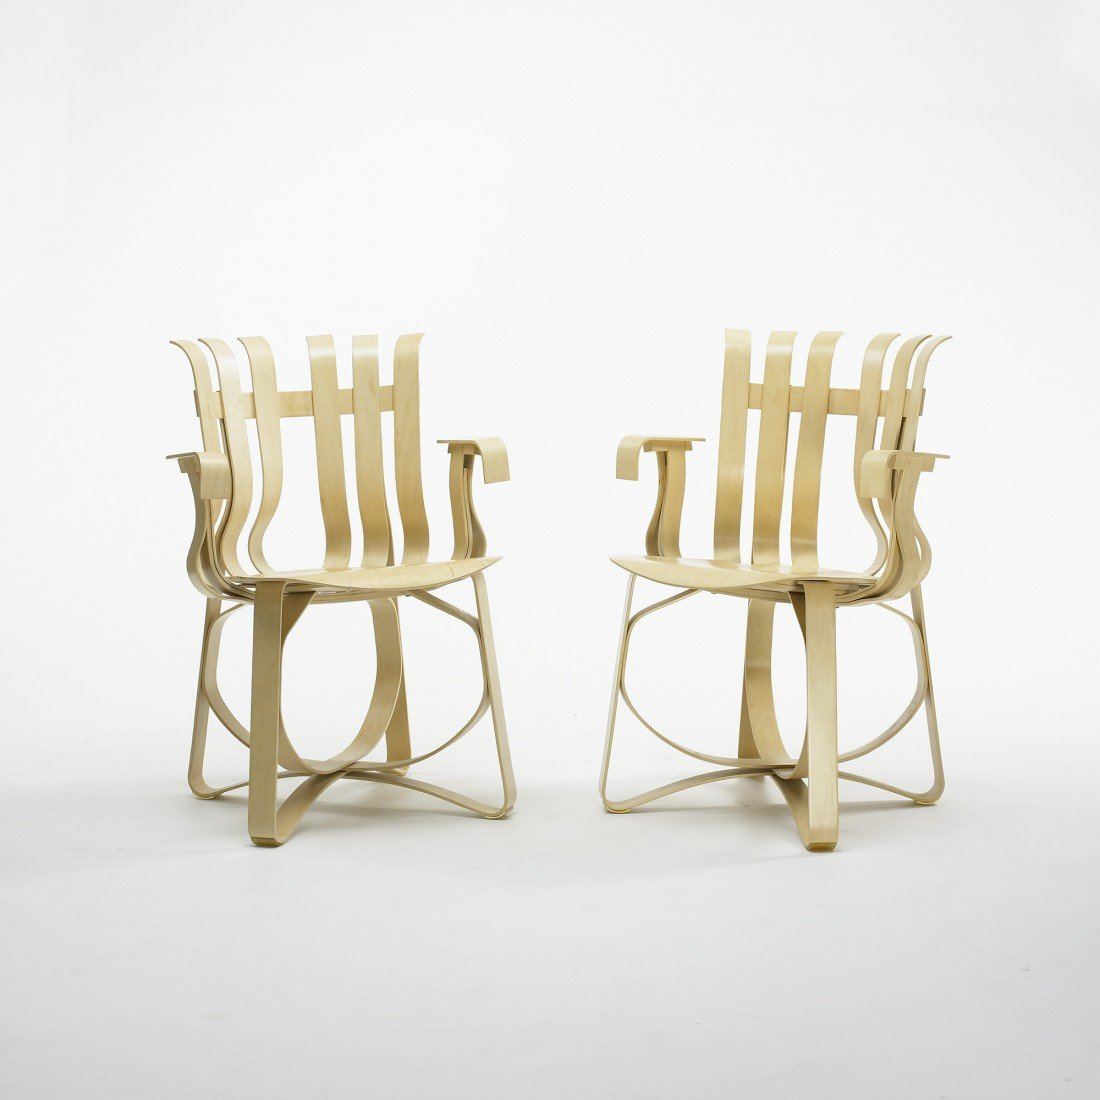 232: Frank Gehry Hat Trick chairs, pair